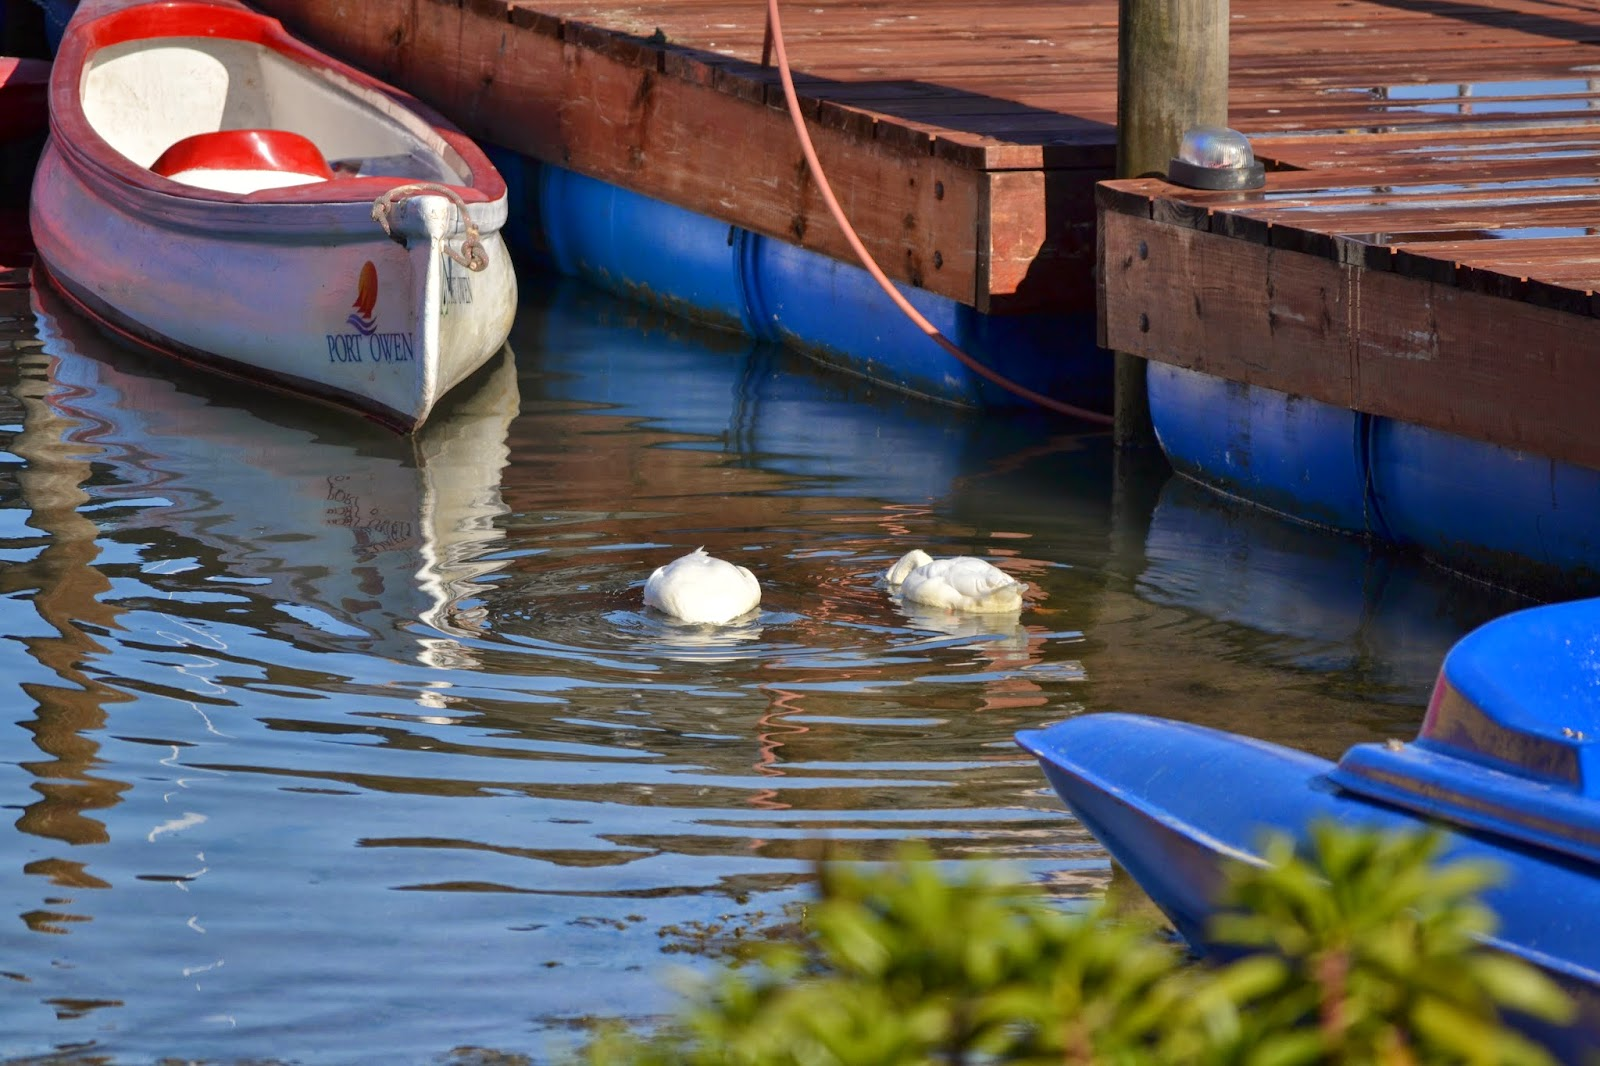 Ducks next to jetty and boats